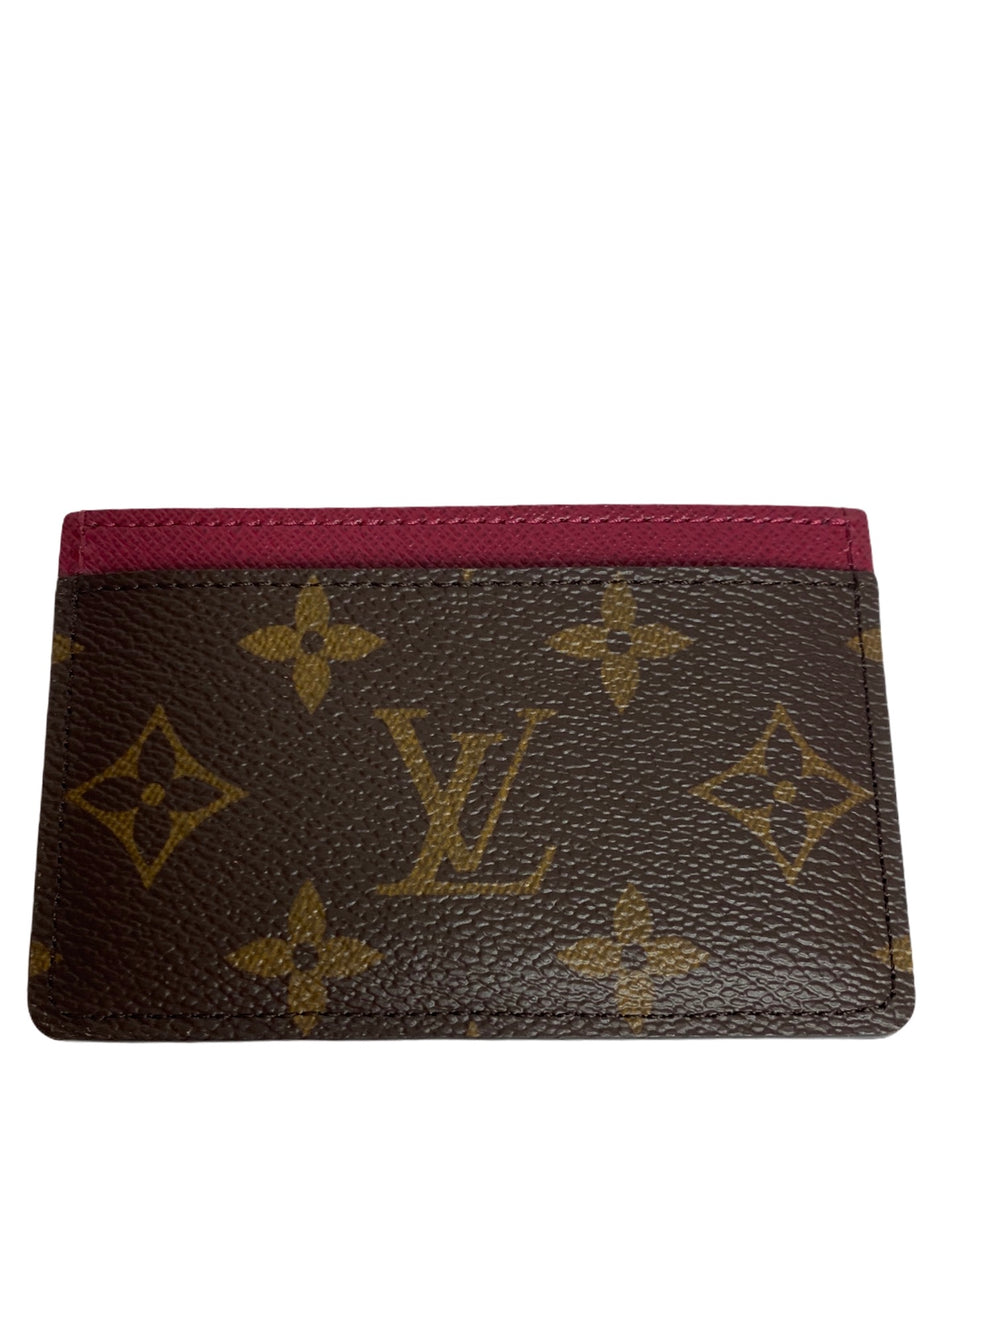 Louis Vuitton Monogram Cardholder - As Seen on Instagram 18/11/20